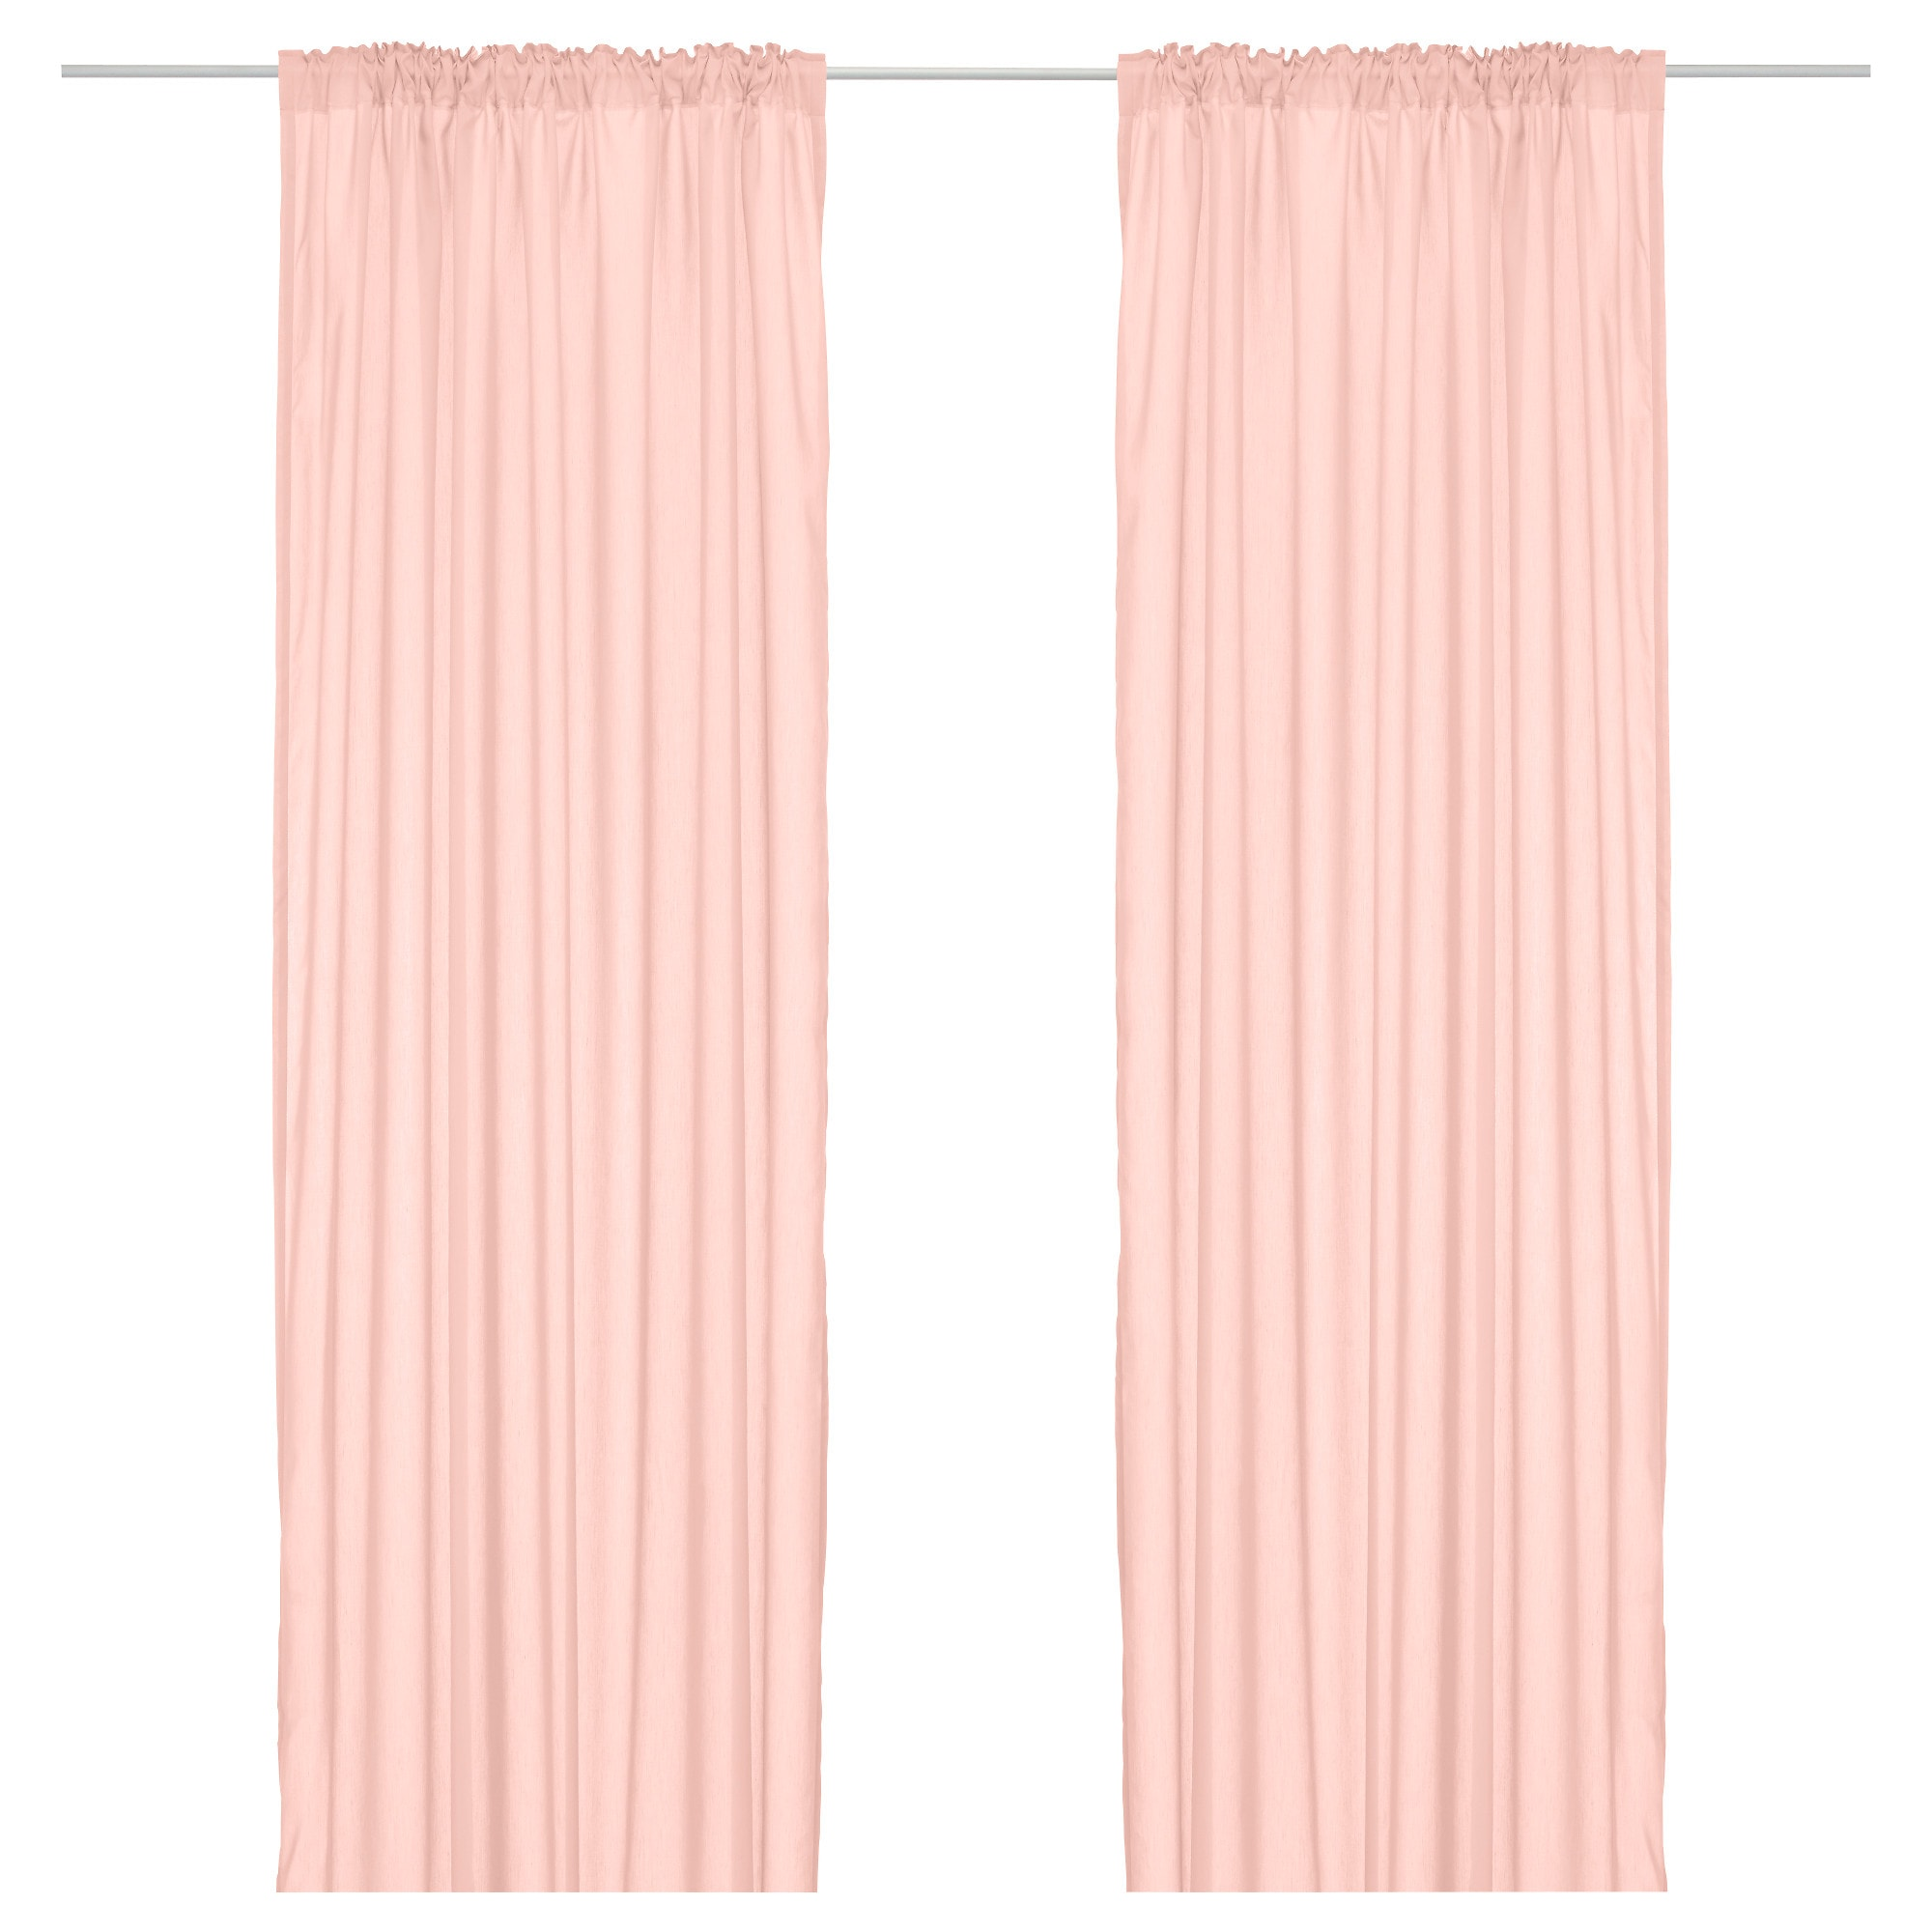 ikea pink curtains 28 images best 25 pink curtains ideas on pinterest pink curtains sanela. Black Bedroom Furniture Sets. Home Design Ideas